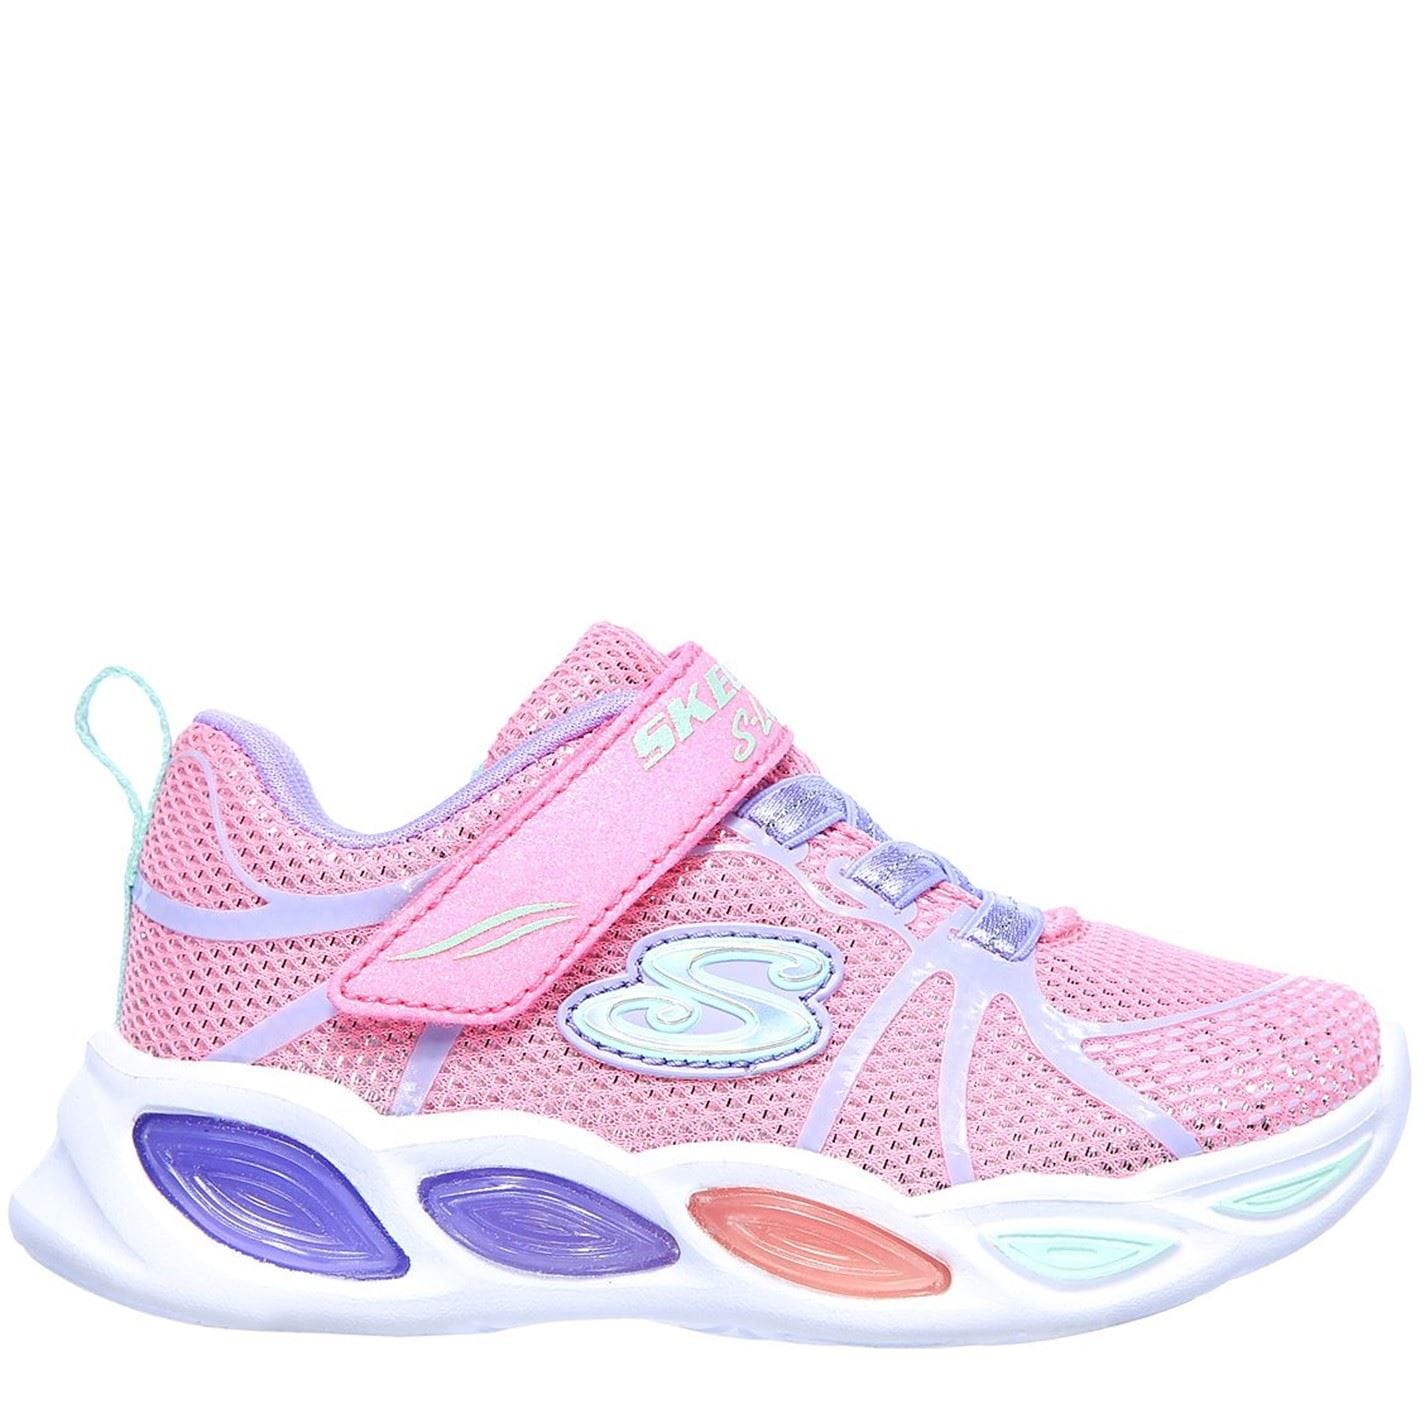 Skechers Shimmer Light Up Trainers Pink/Multi